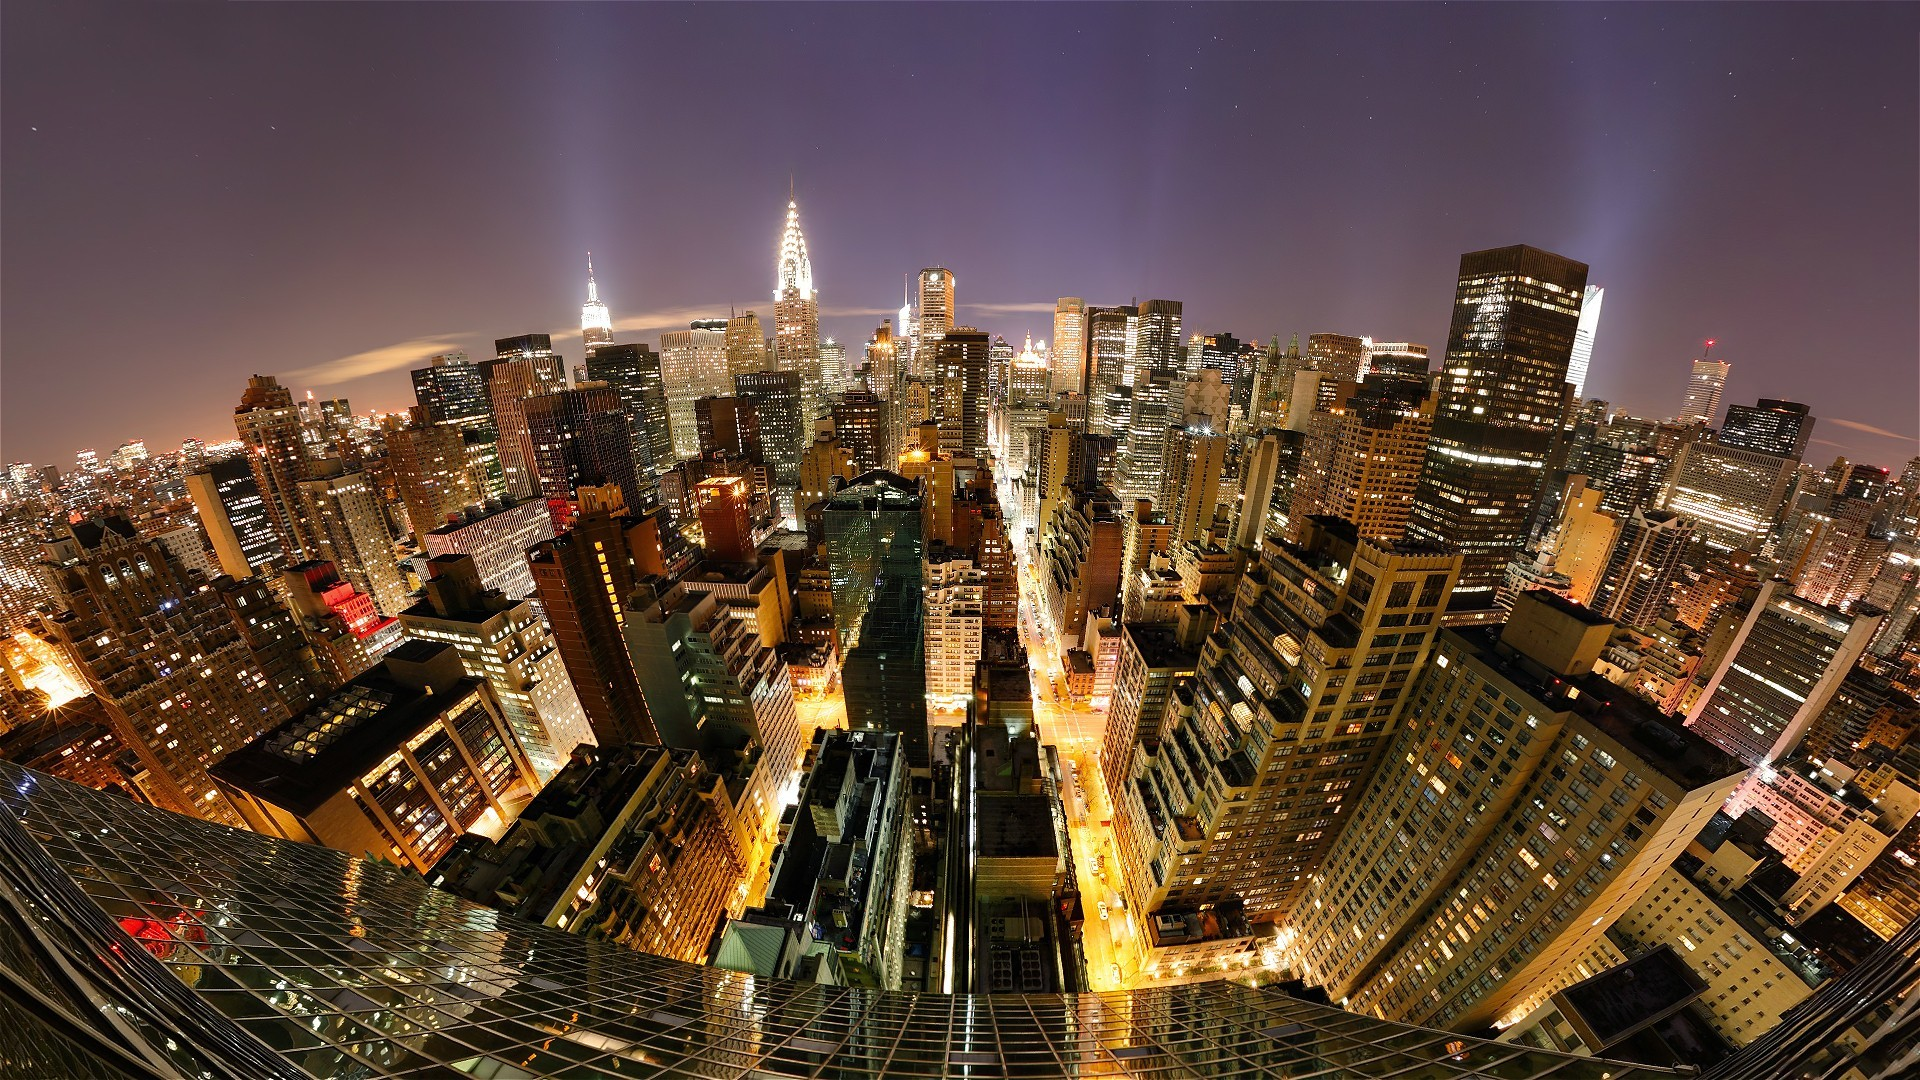 new york city pictures at night wallpaper new york city pictures at .